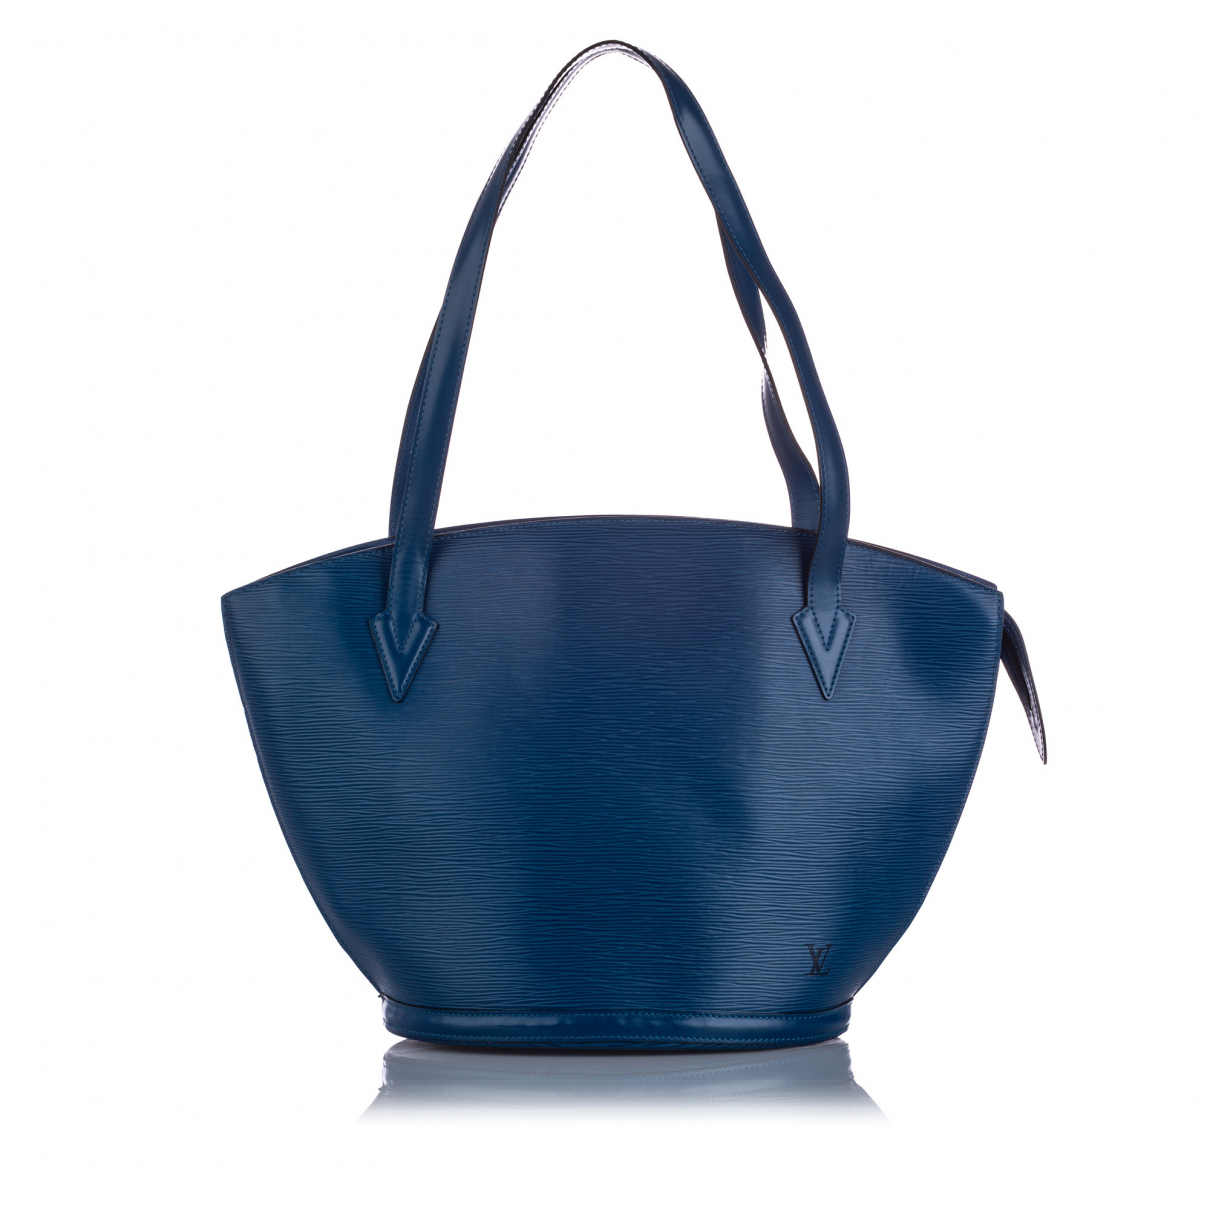 Louis Vuitton \N Blue Leather handbag for Women \N